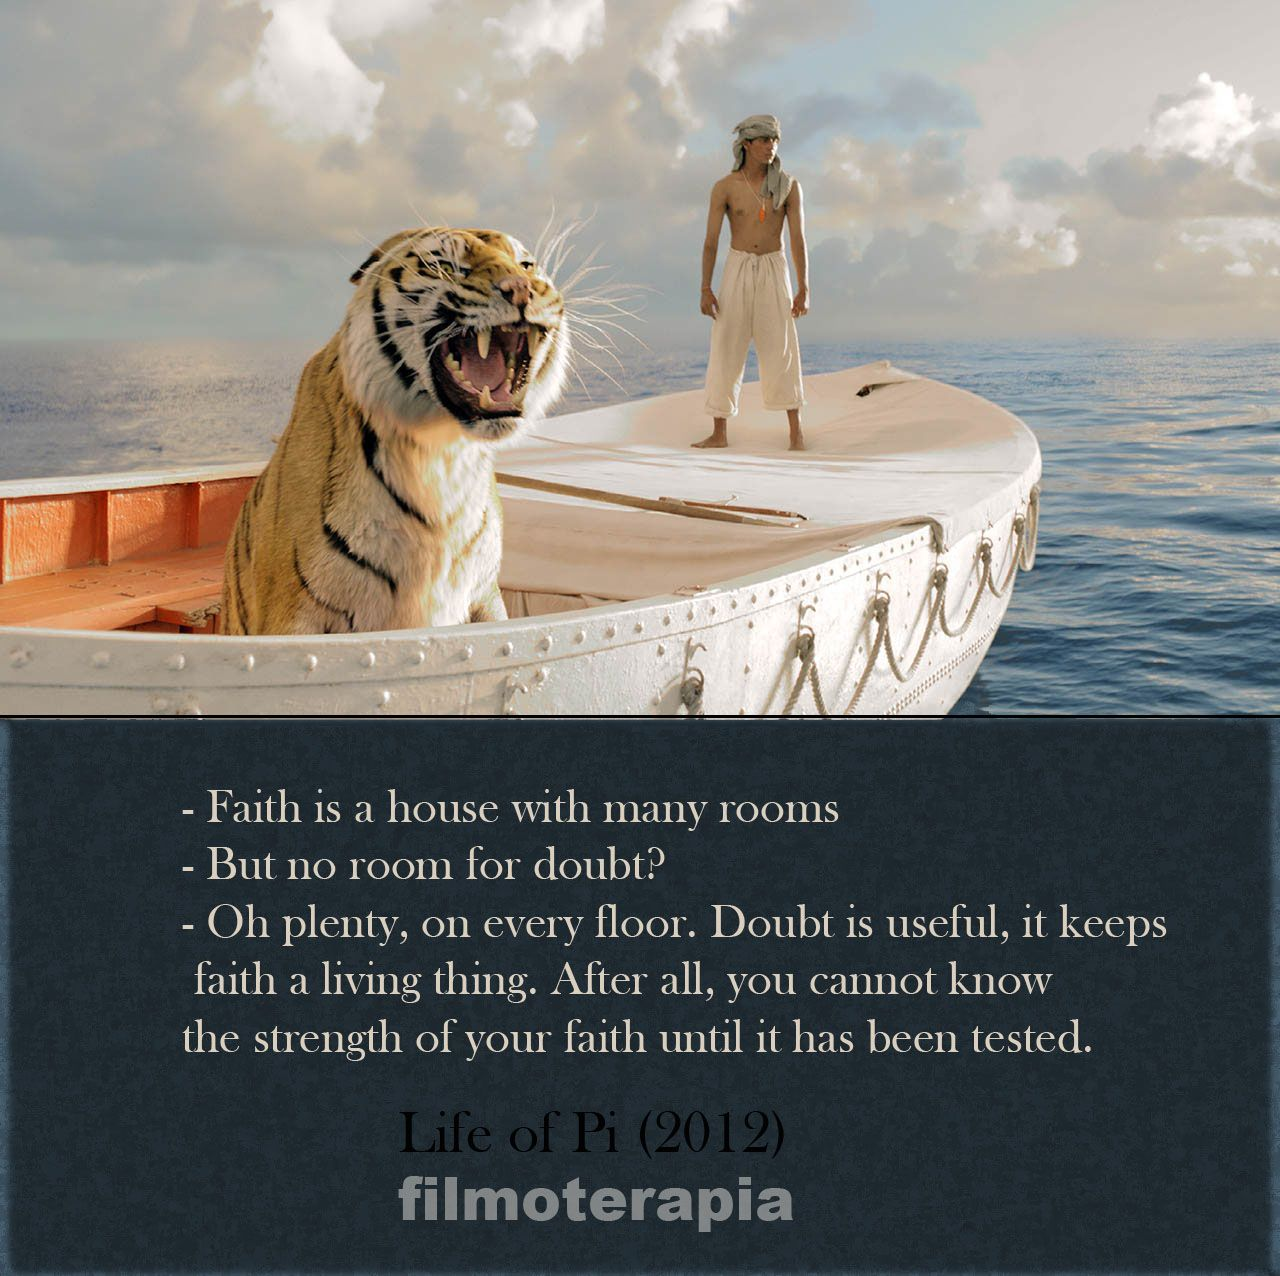 life of pi n illustrator takes on a modern classic three life of pi my child and i absolutely love love this movie we can